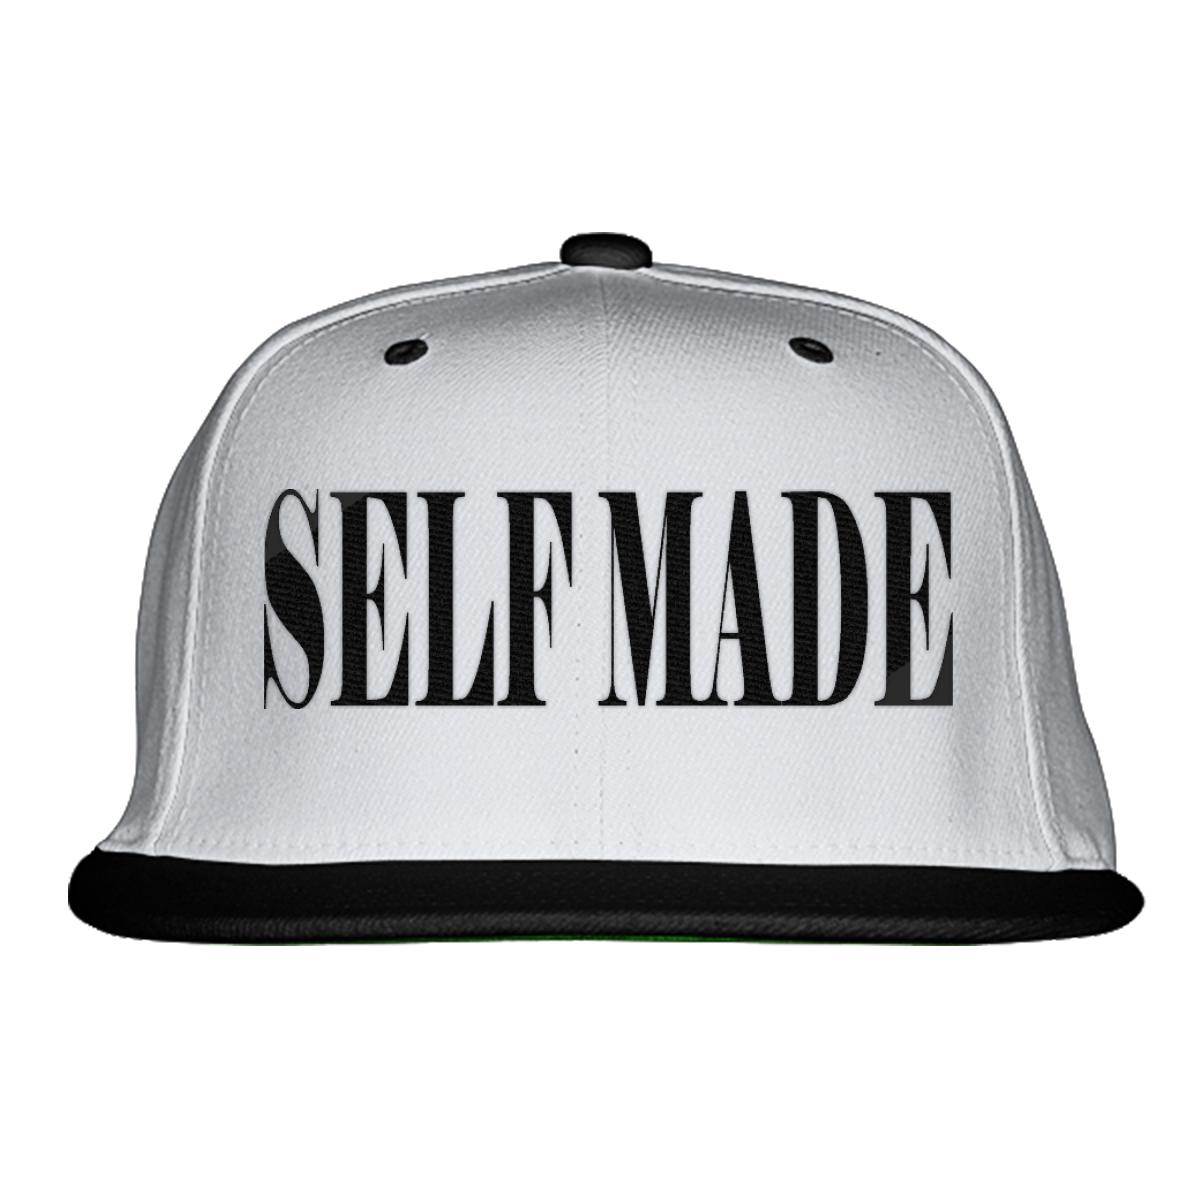 Self Made Snapback Hat - Embroidery +more 7f0cb09b139